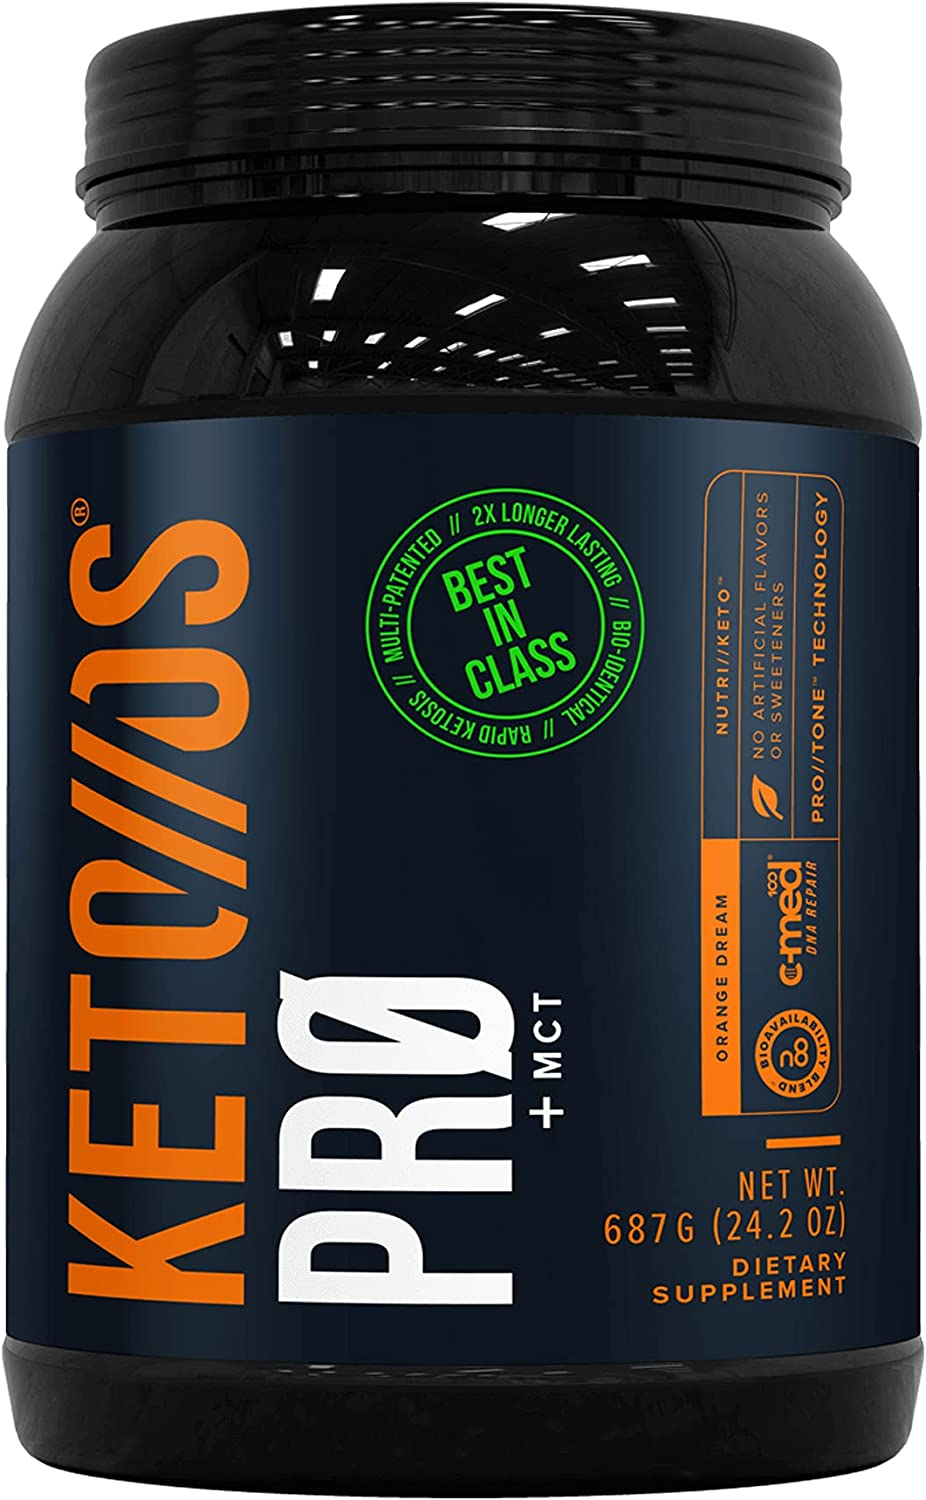 Pruvit Keto Excellent OS Pro Orange Dream + Dietary Supplem - MCT 2021 spring and summer new Ketones